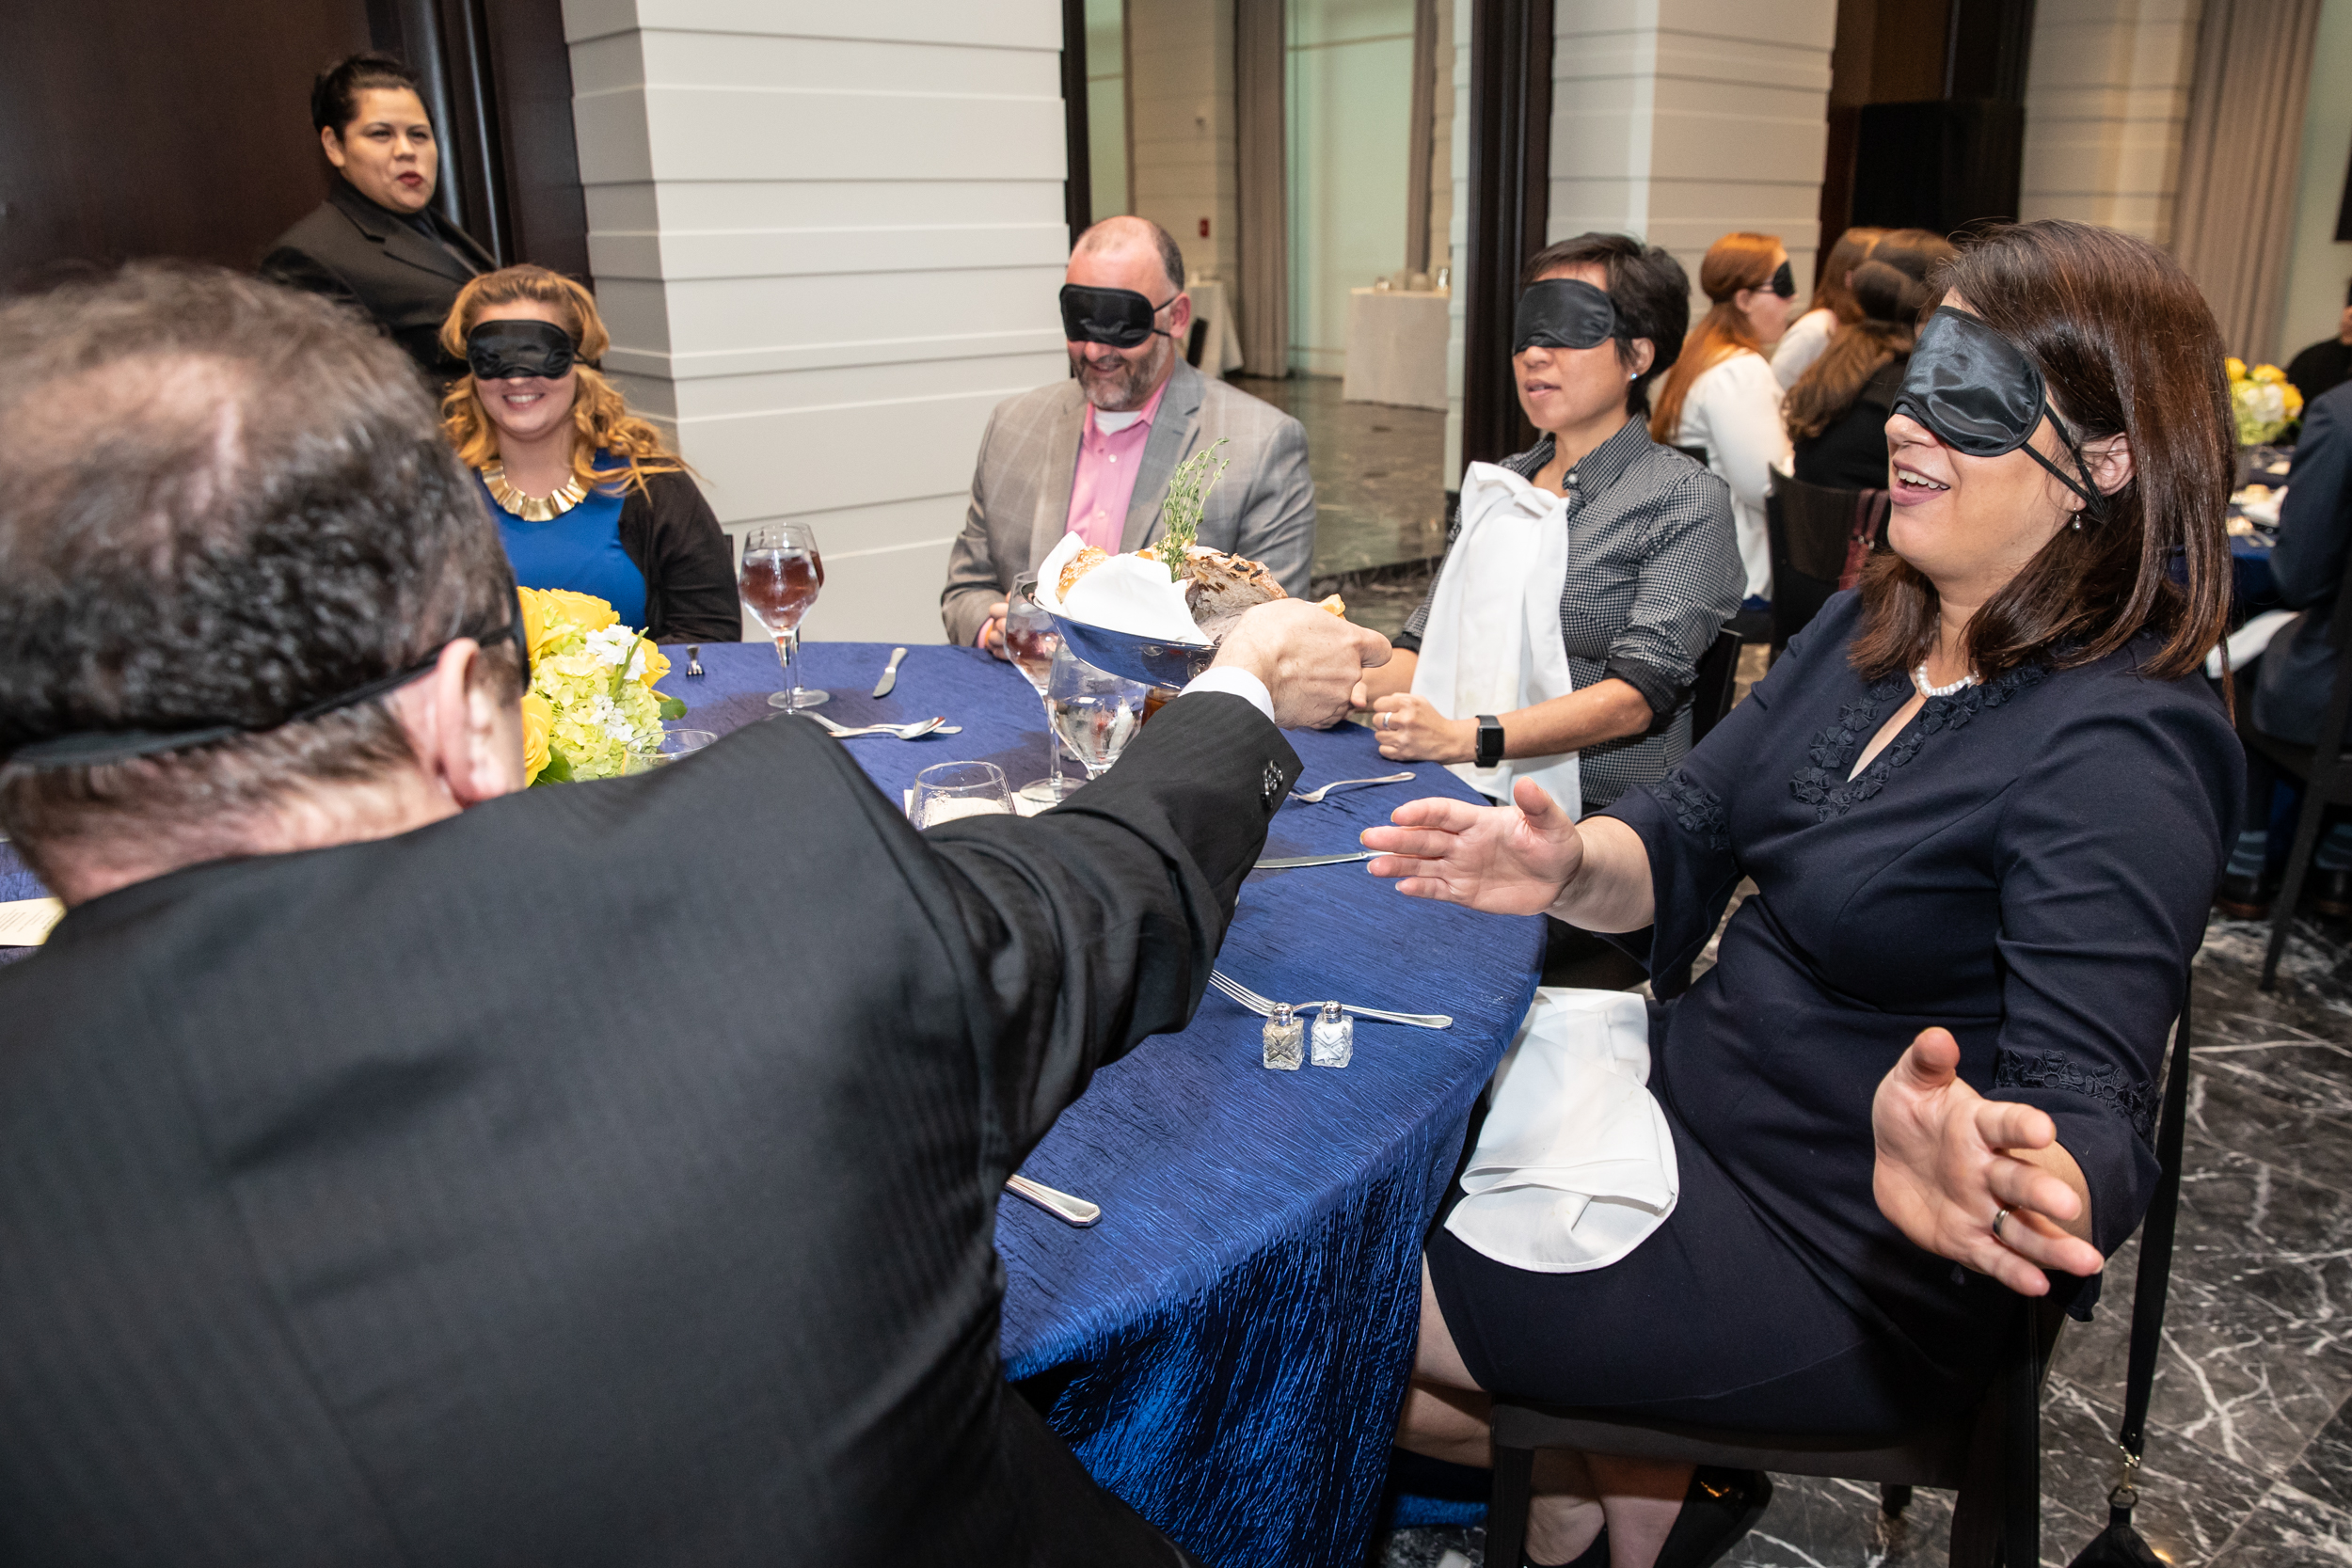 Five blindfolded participants sit at a round table, with more participants out of frame. One participant passes a bread basket toward the participant on his right. She reaches out to find the bread.